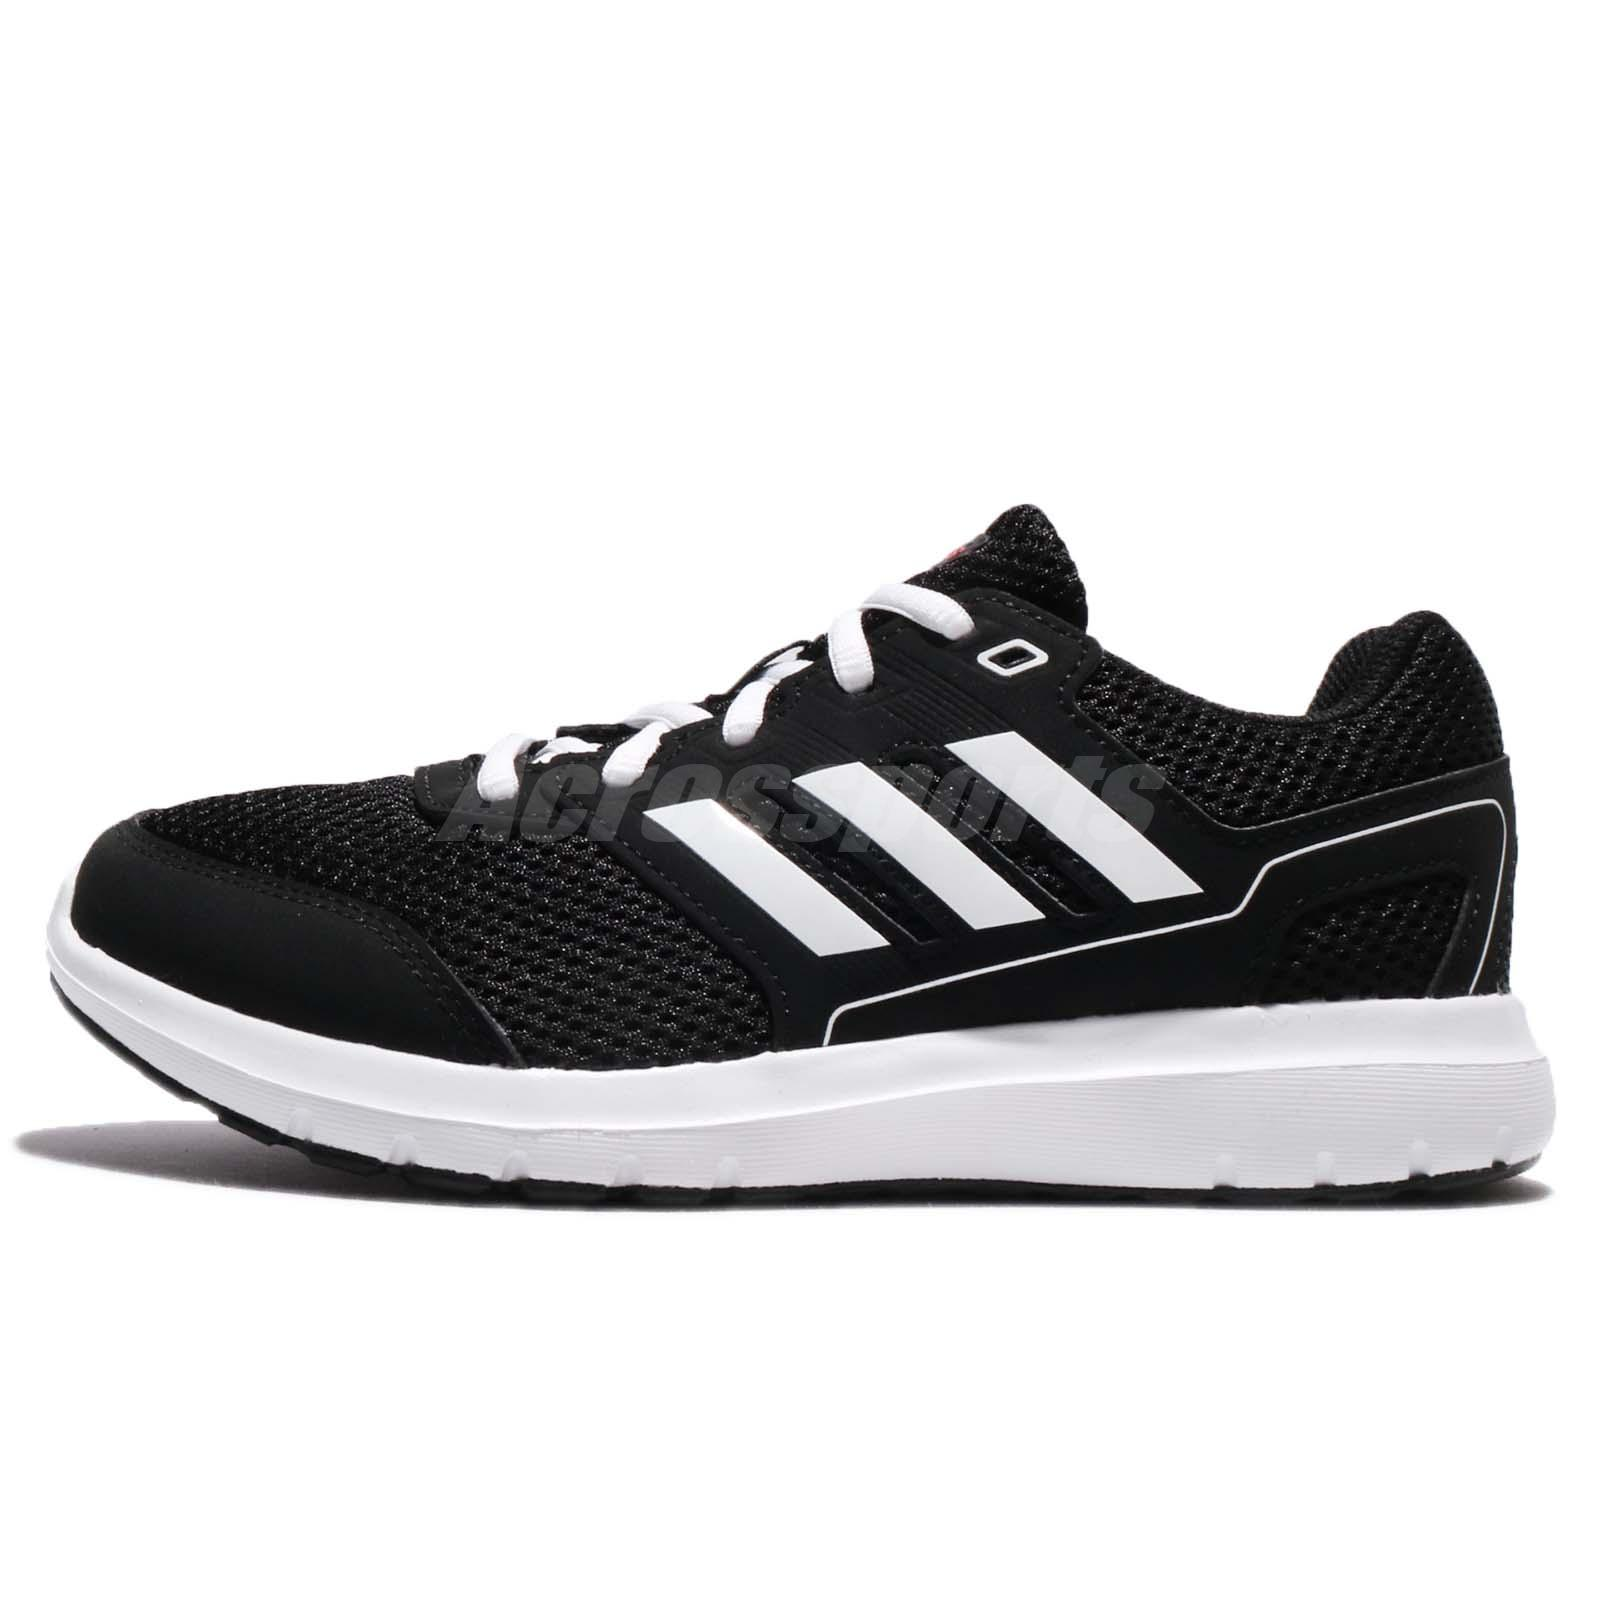 size 40 877bb d5ab2 adidas Duramo Lite 2.0 2 Black White Women Running Shoes Sneakers Trainer  CG4050